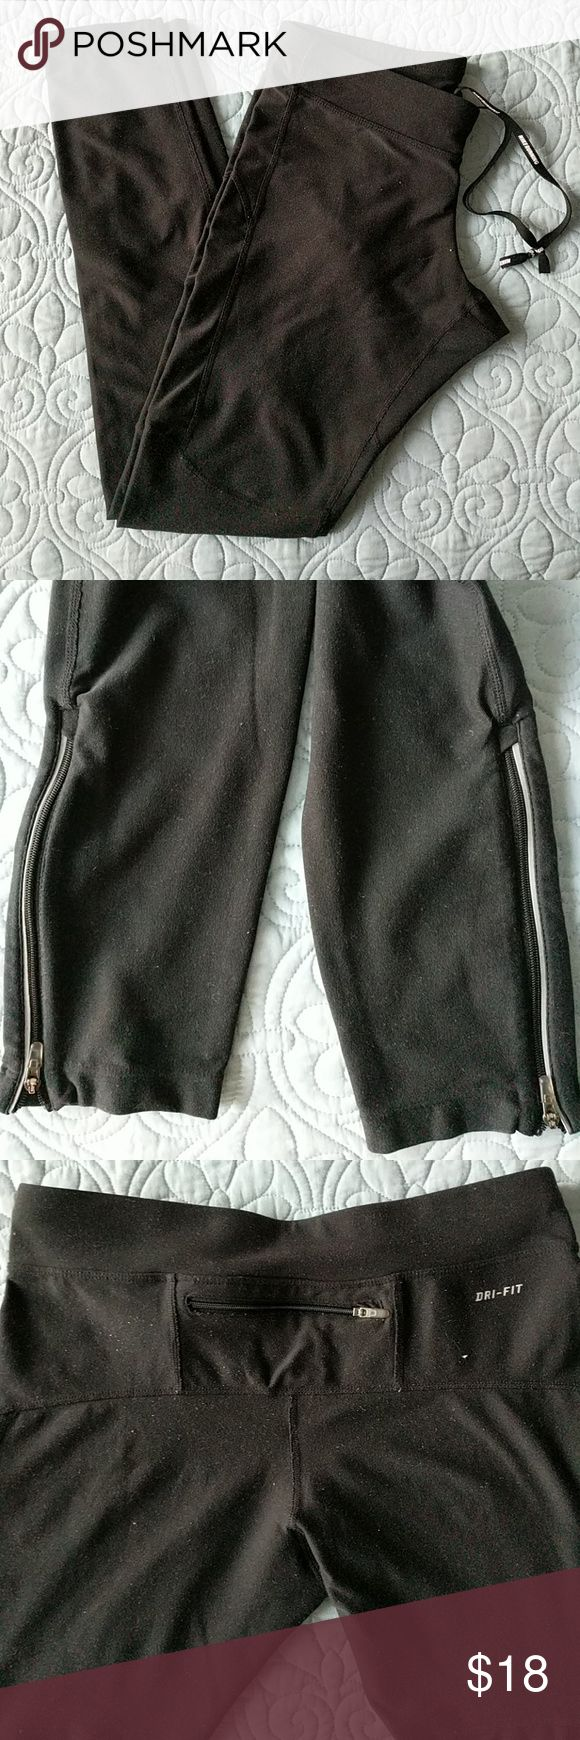 Nike Running Dri-Fit Pants Full length, very durable running pants. Only one small wear spot under Nike logo (see pic). Otherwise, great condition. Nike Pants Leggings